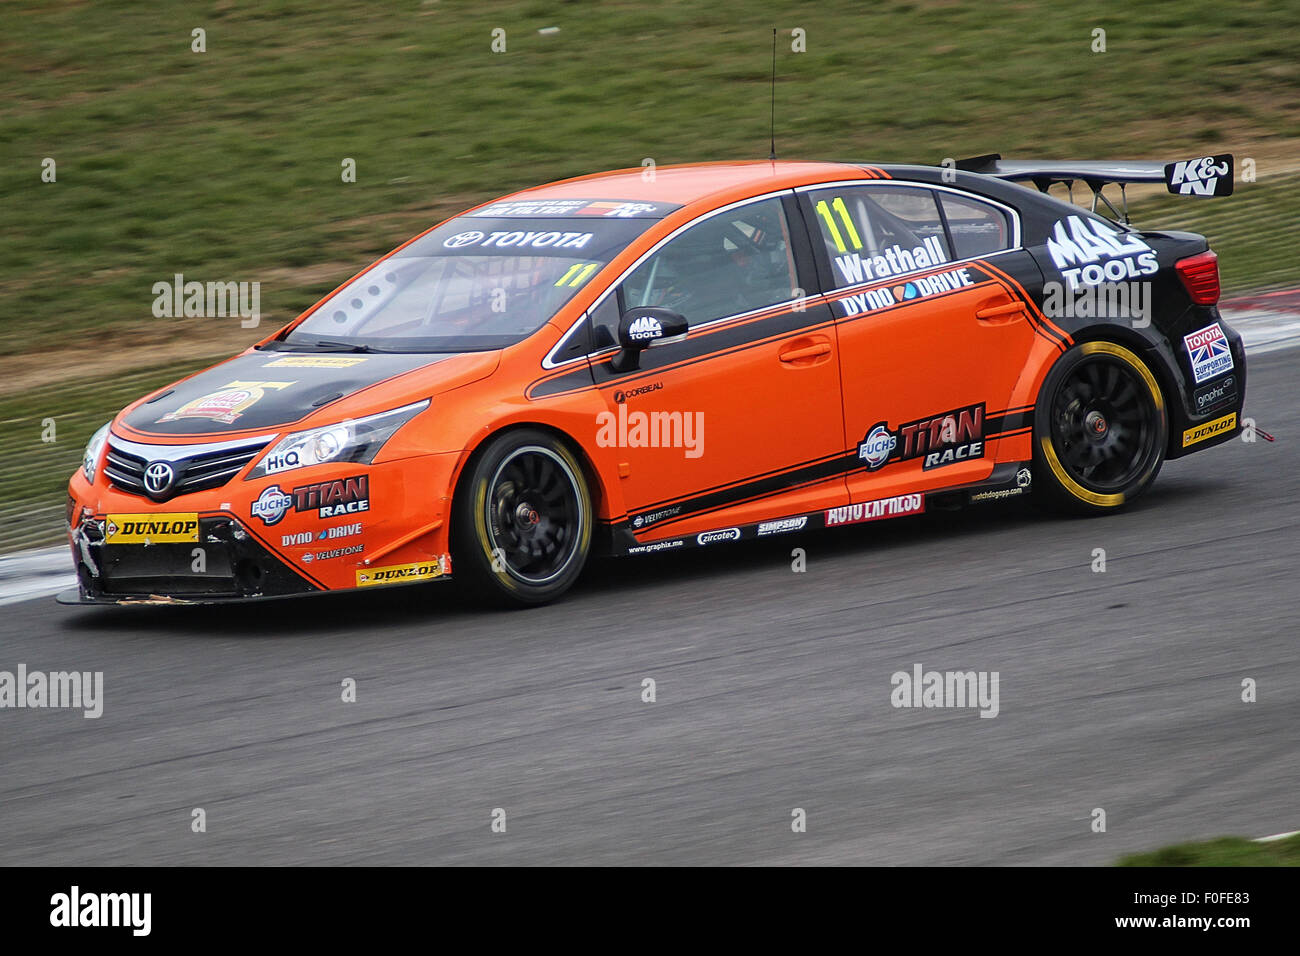 Frank wrathall at the southbank in the dynojet ngtc toyota avensis brands hatch btcc